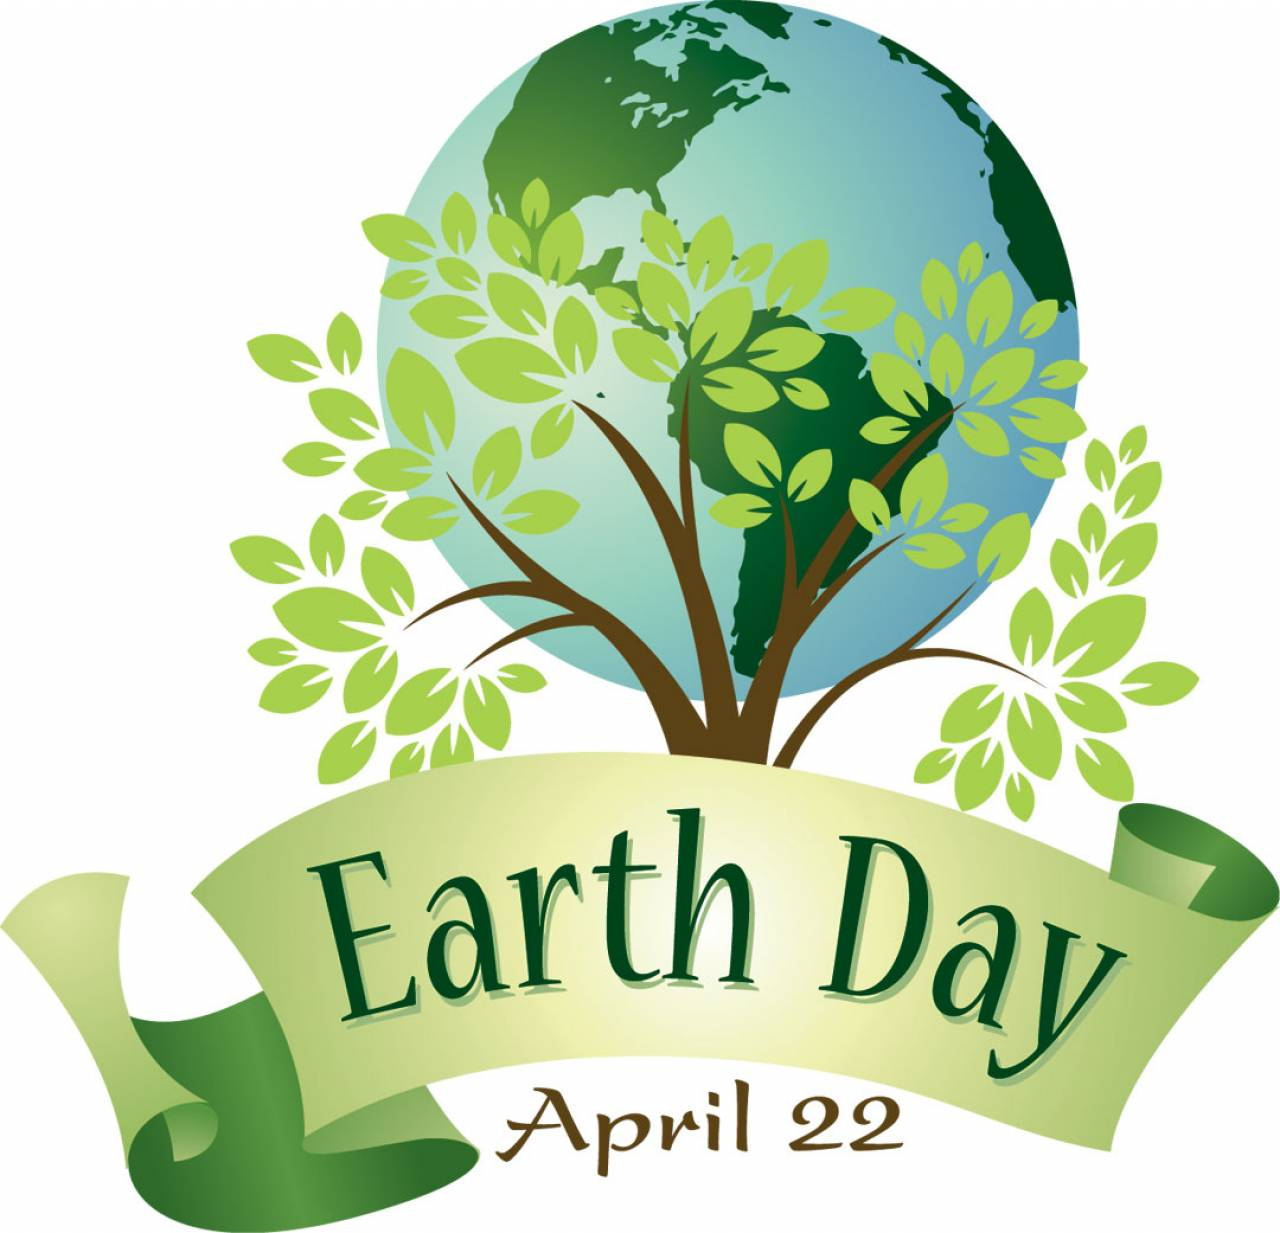 50 Best Earth Day Wish Pictures And Images